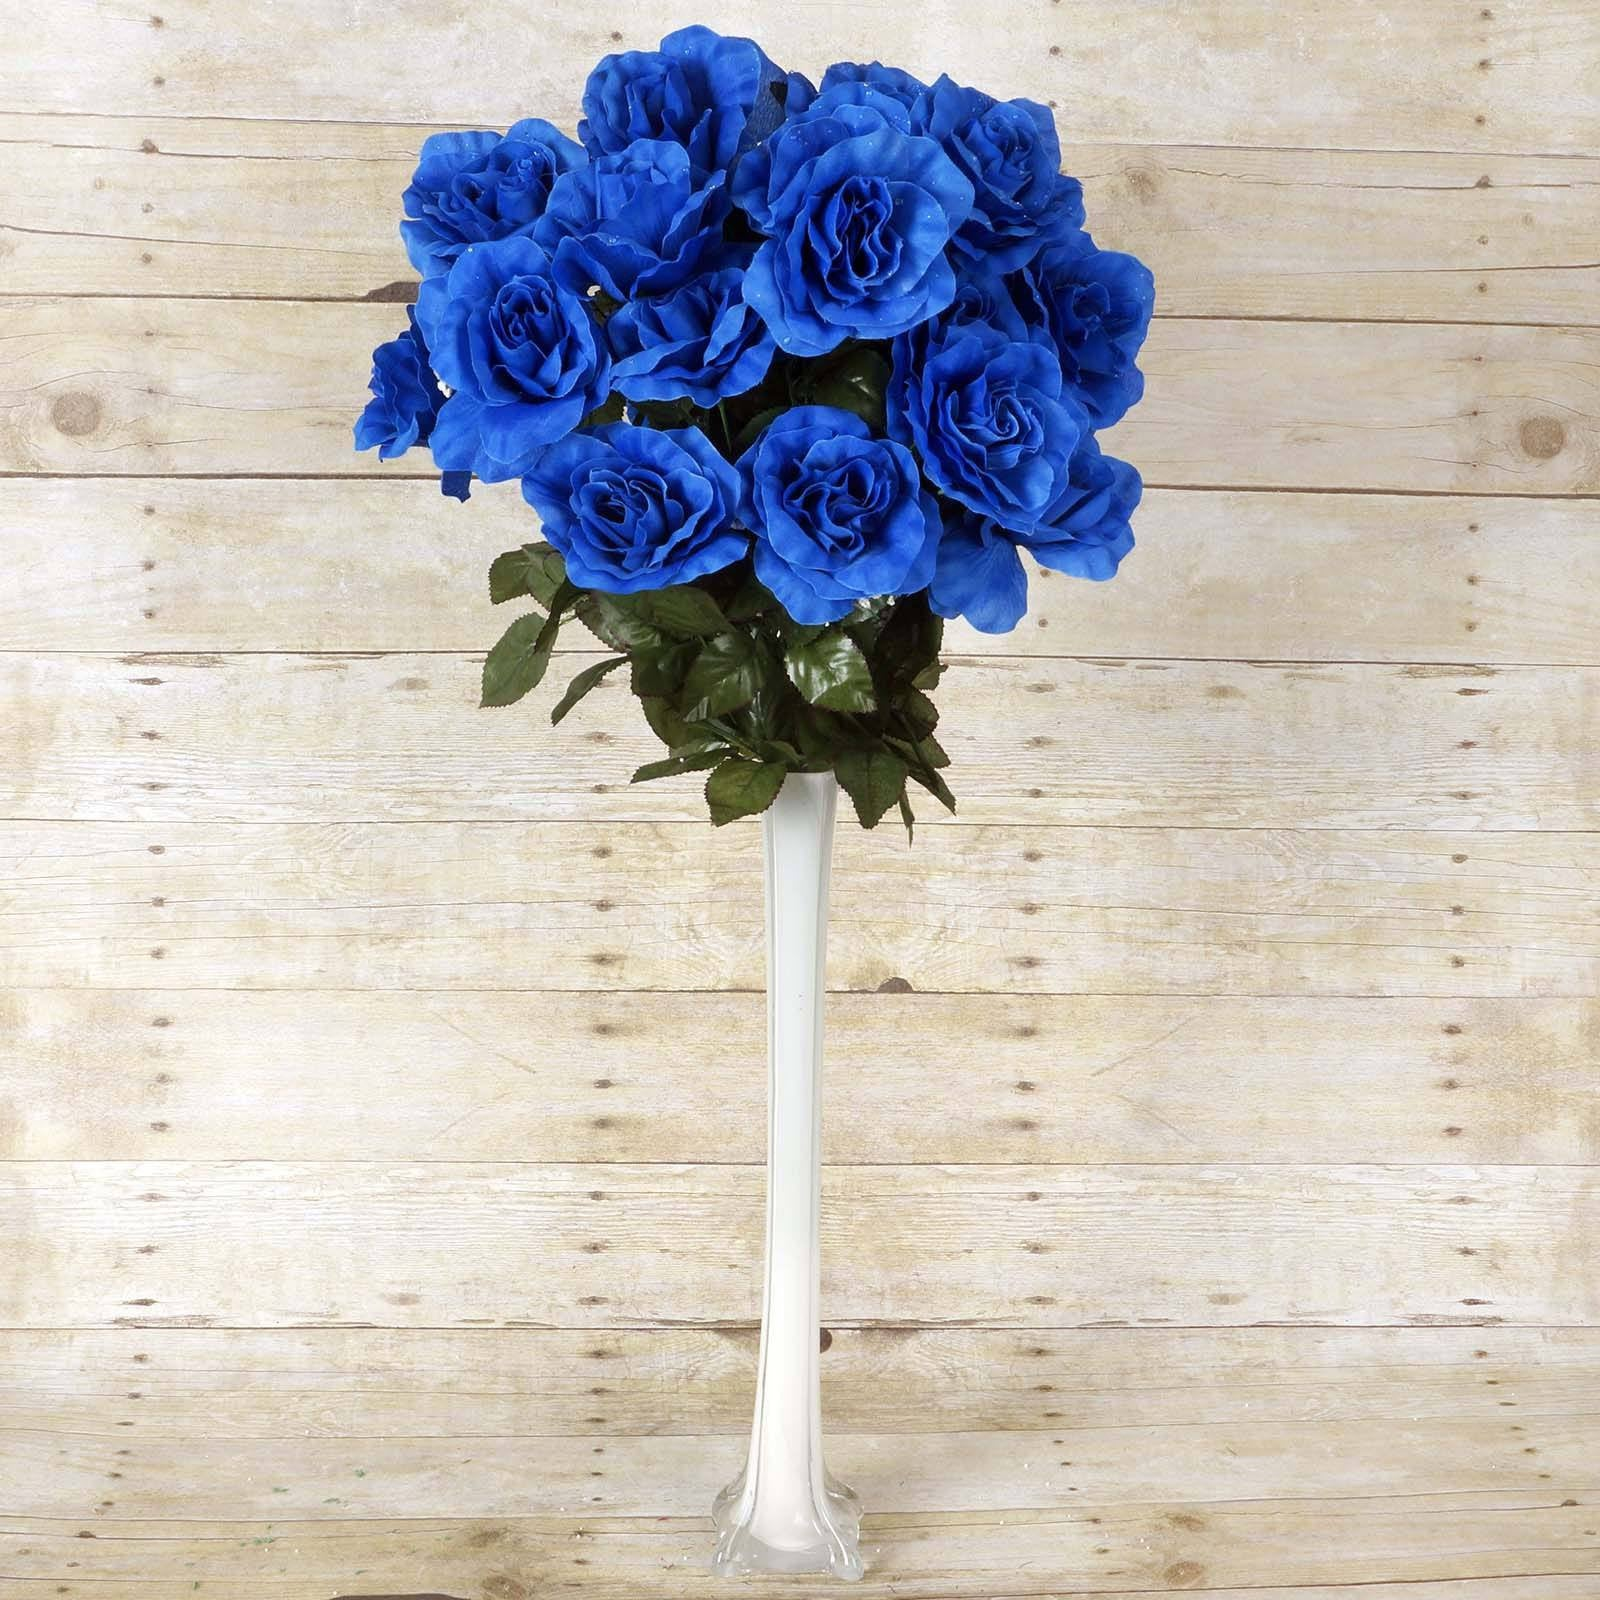 96 giant silk open rose royal blue efavormart roses wedding flower vase centerpiece decor royal blue 96 giant silk open rose royal blue reviewsmspy